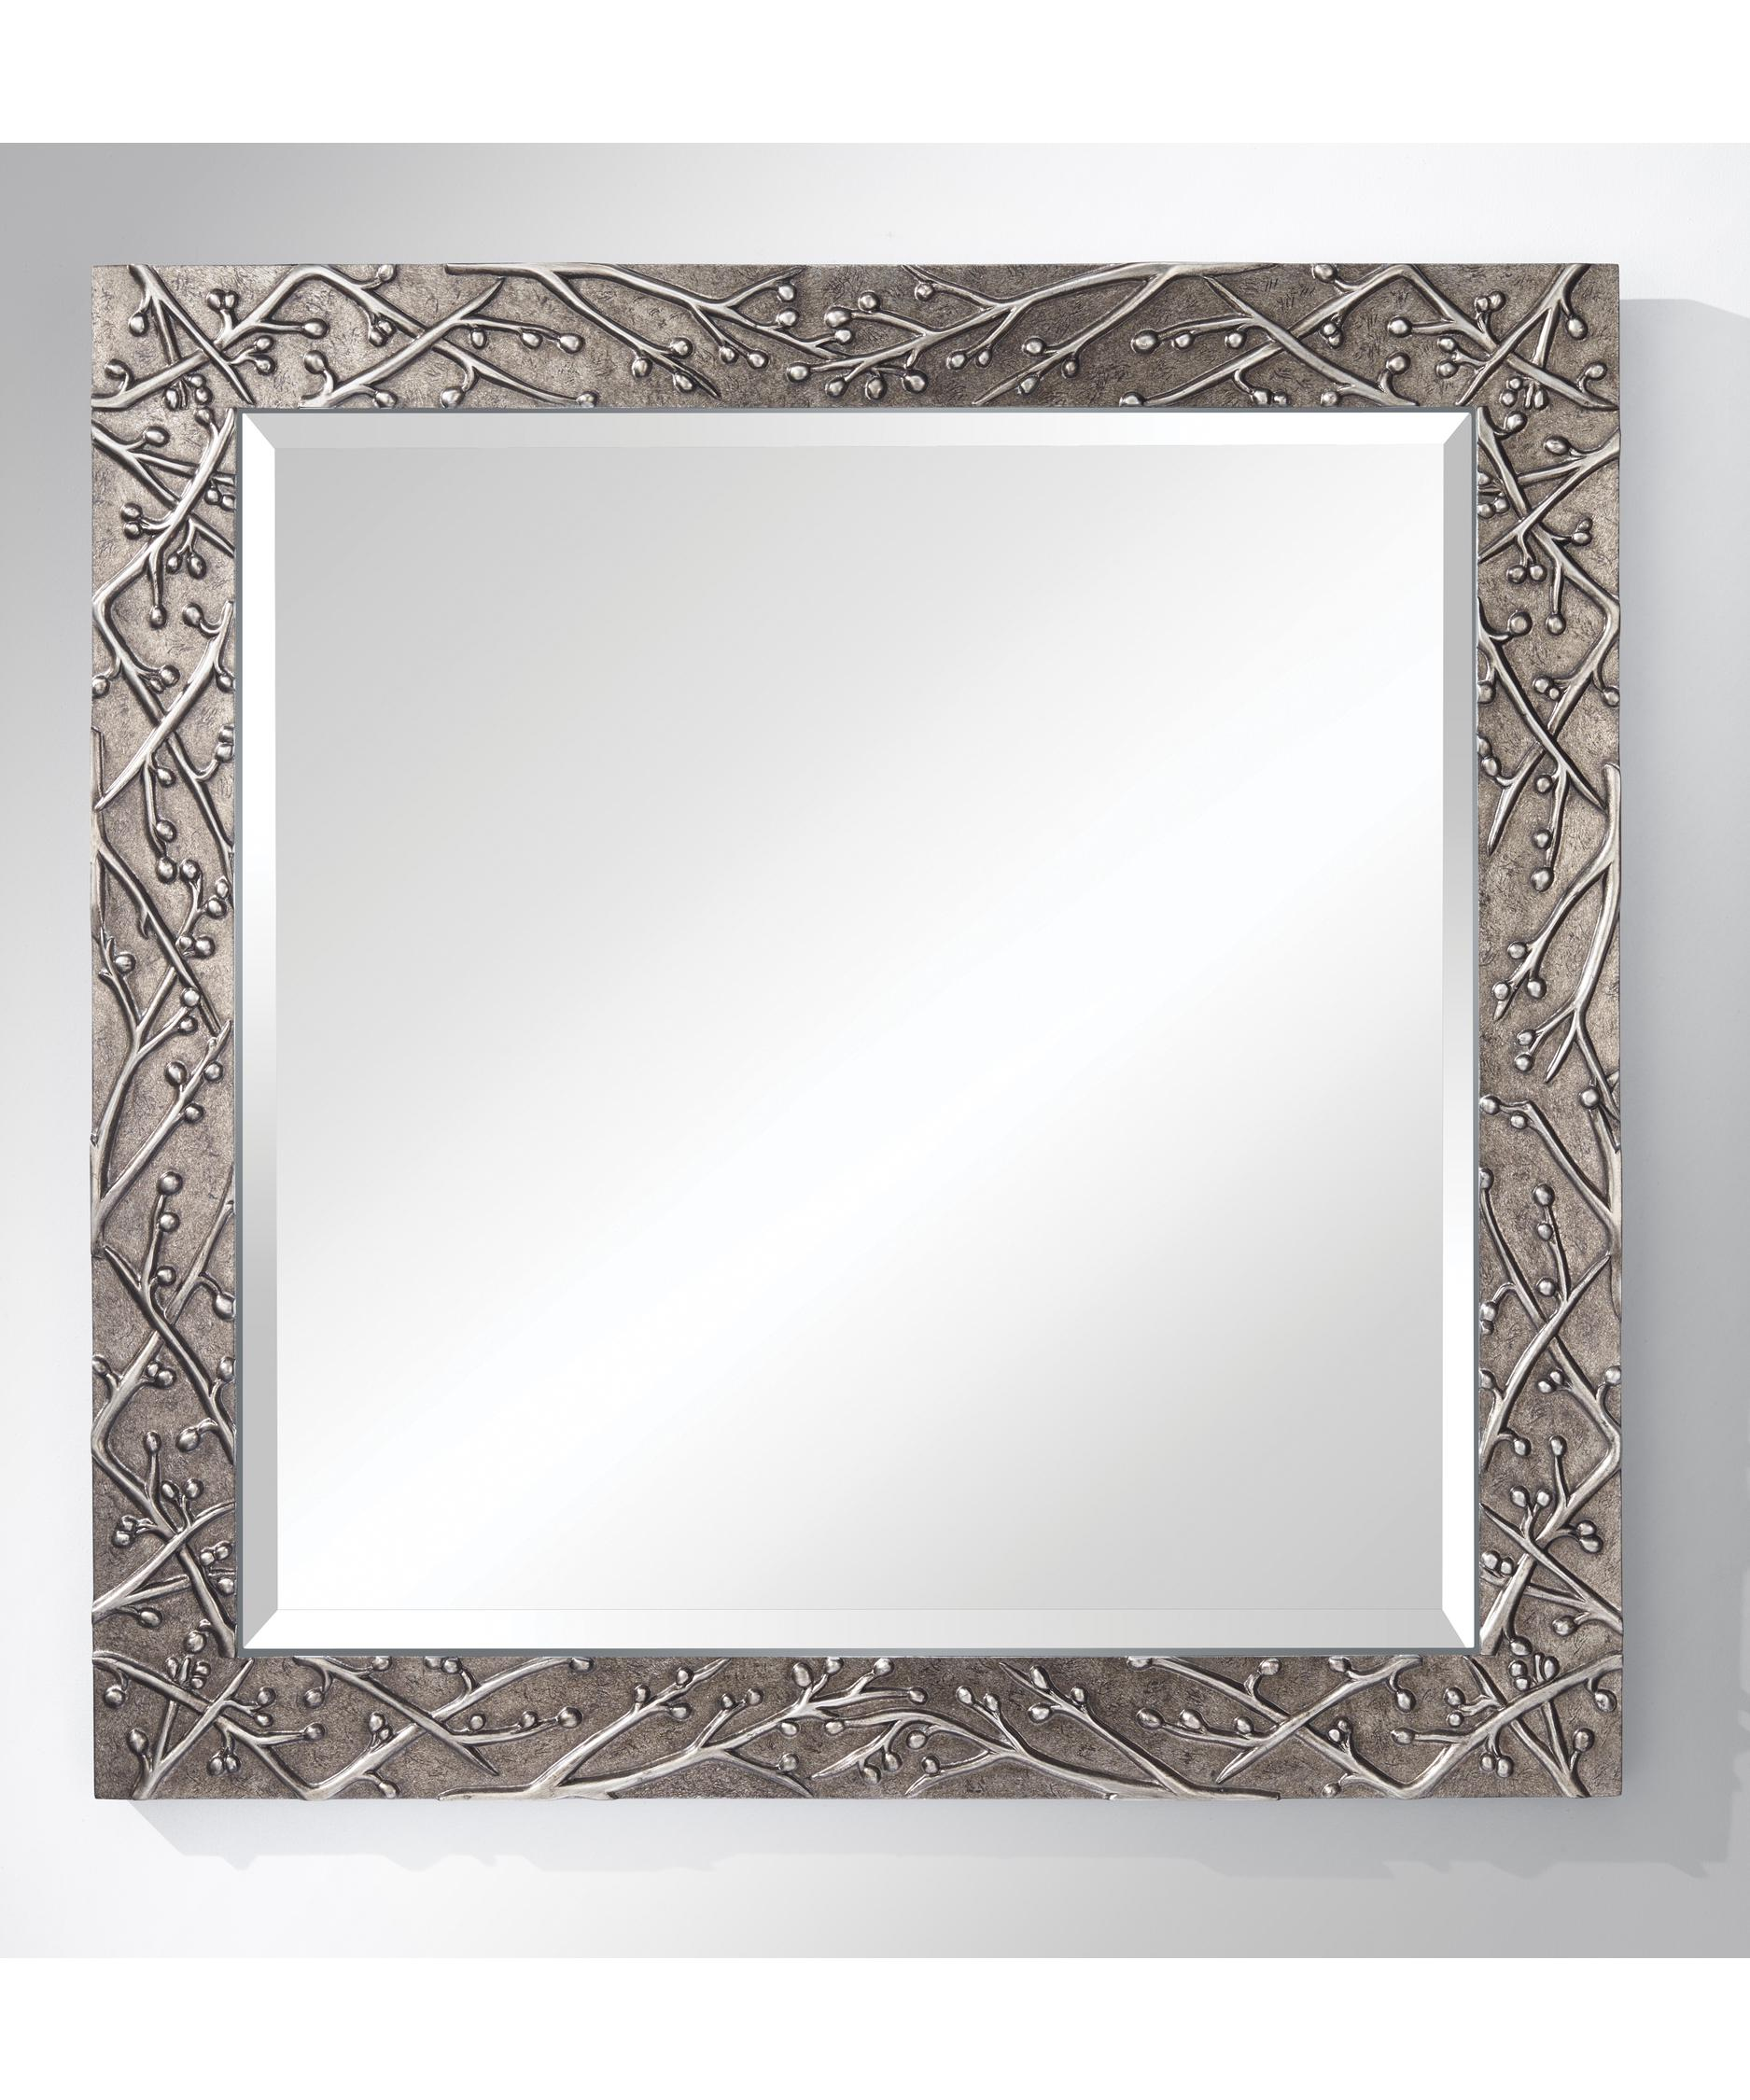 Murray Feiss Mirrors: Murray Feiss MR1179 Xera Square Wall Mirror